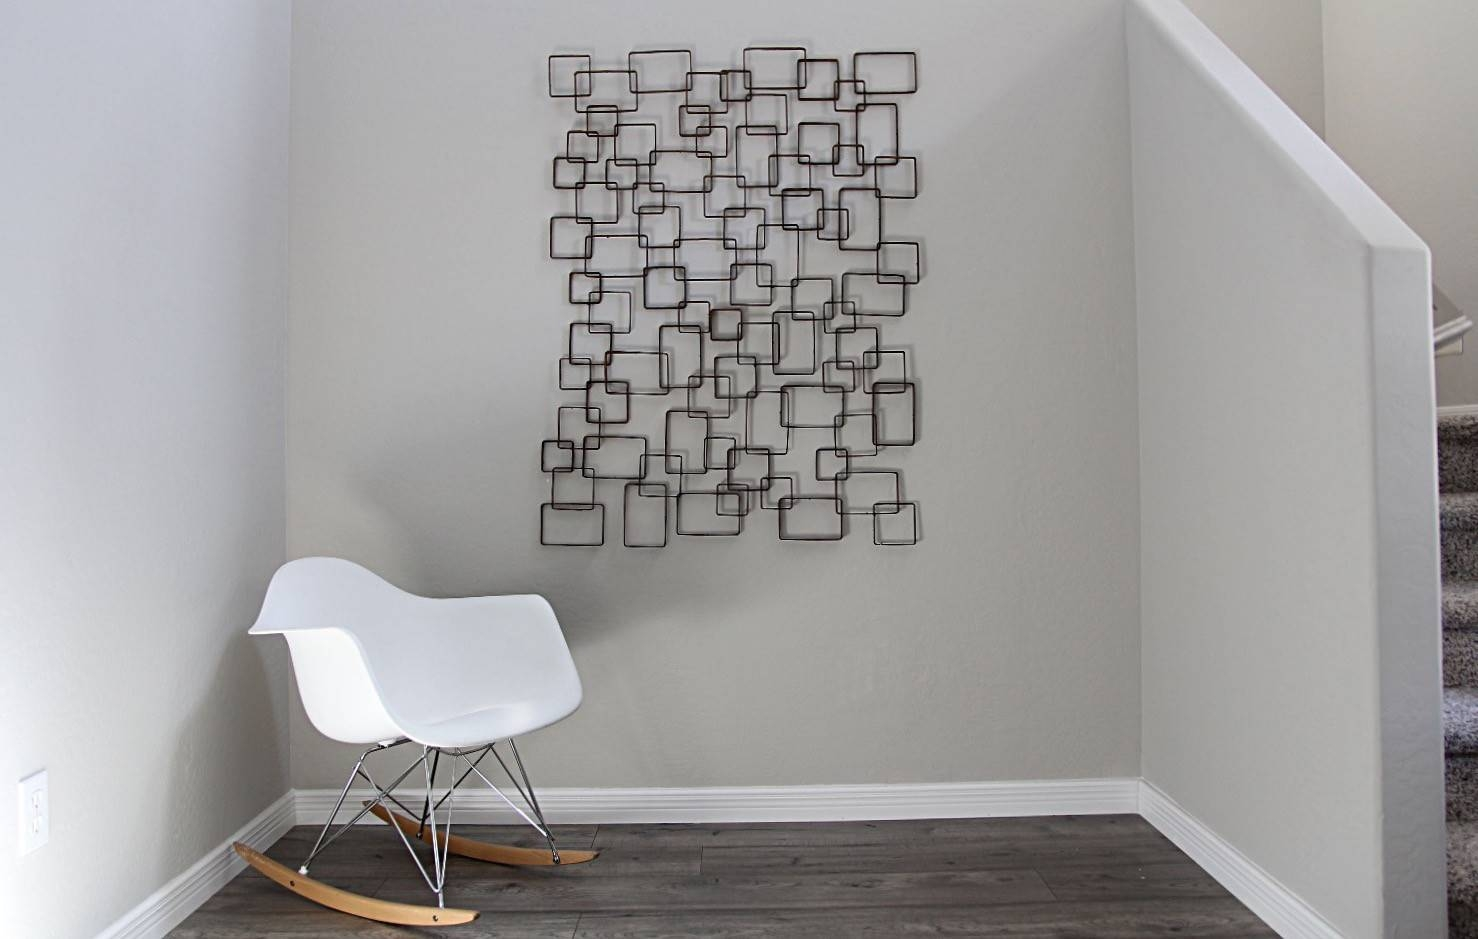 Retro Windows | Mid Century Modern Metal Sculpture | Petrykowski Intended For Latest Retro Metal Wall Art (View 15 of 20)